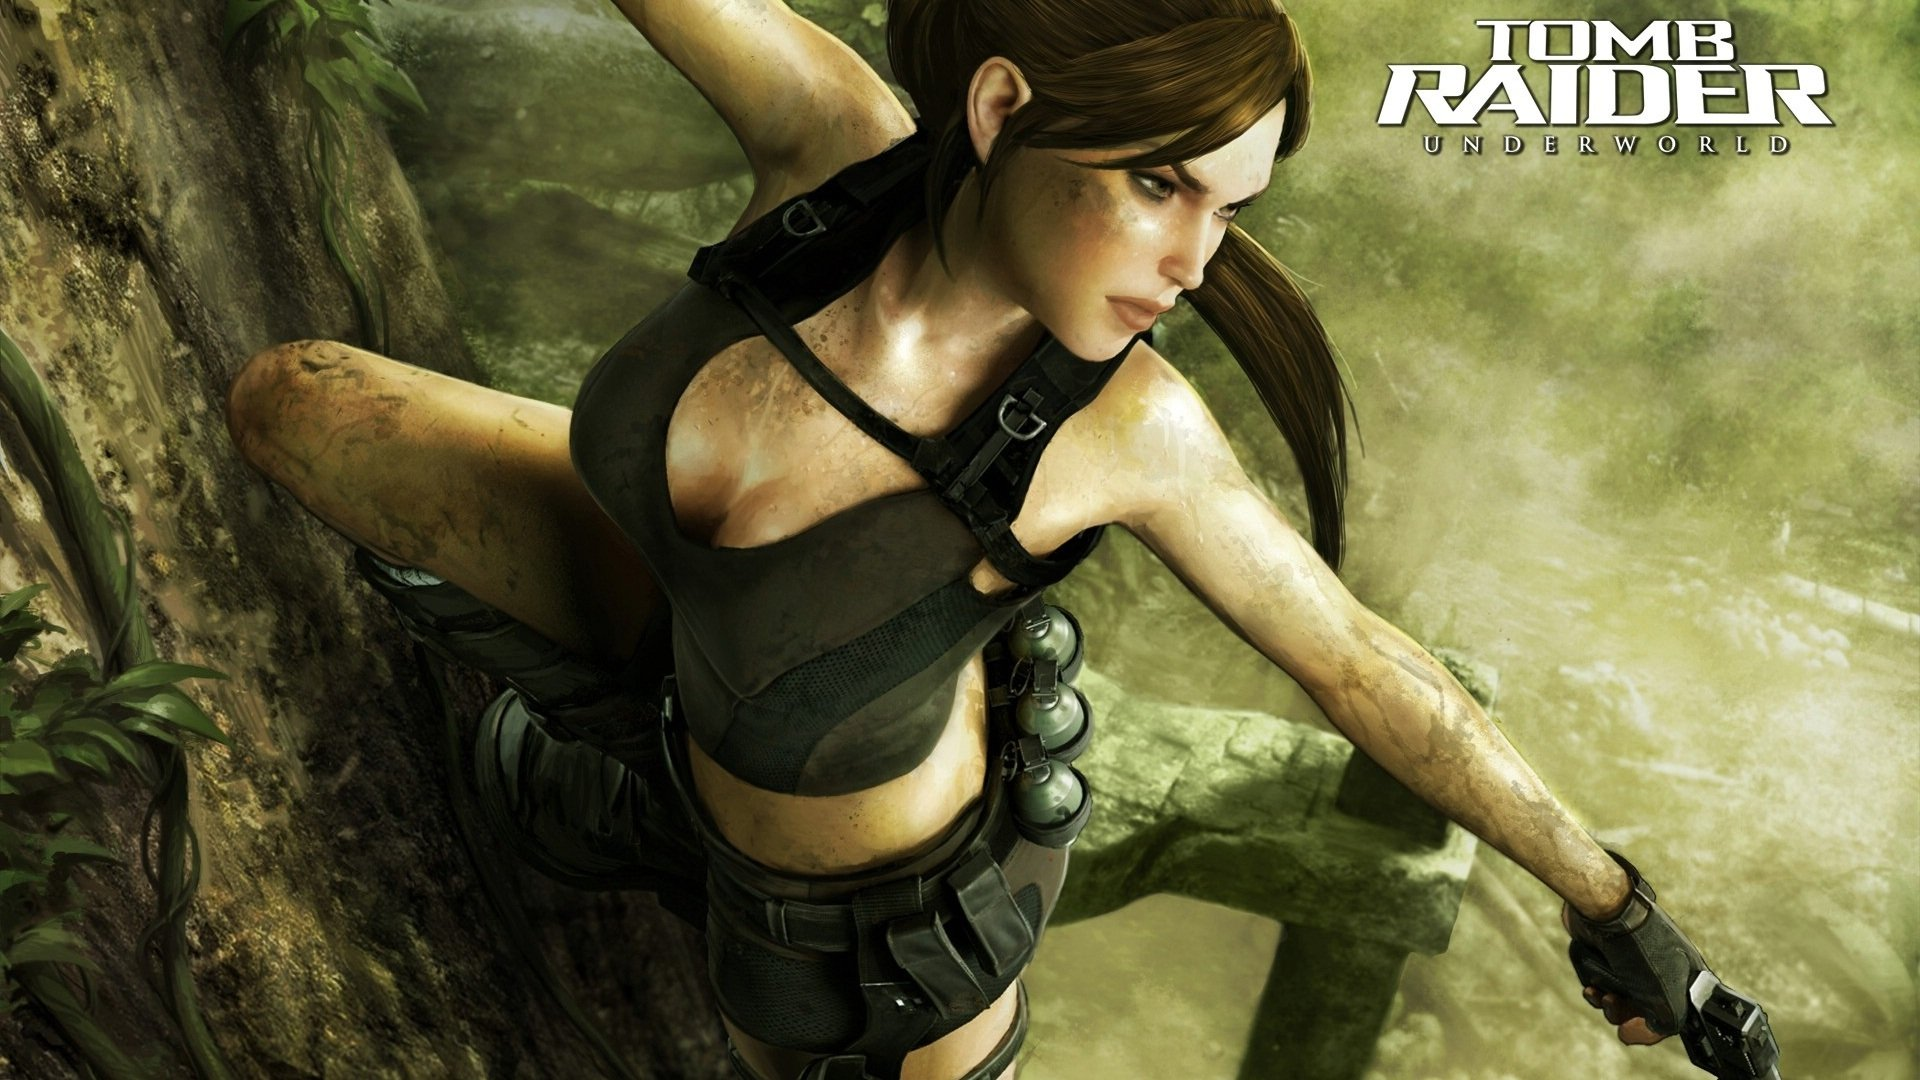 41 Tomb Raider Underworld Hd Wallpapers Background Images